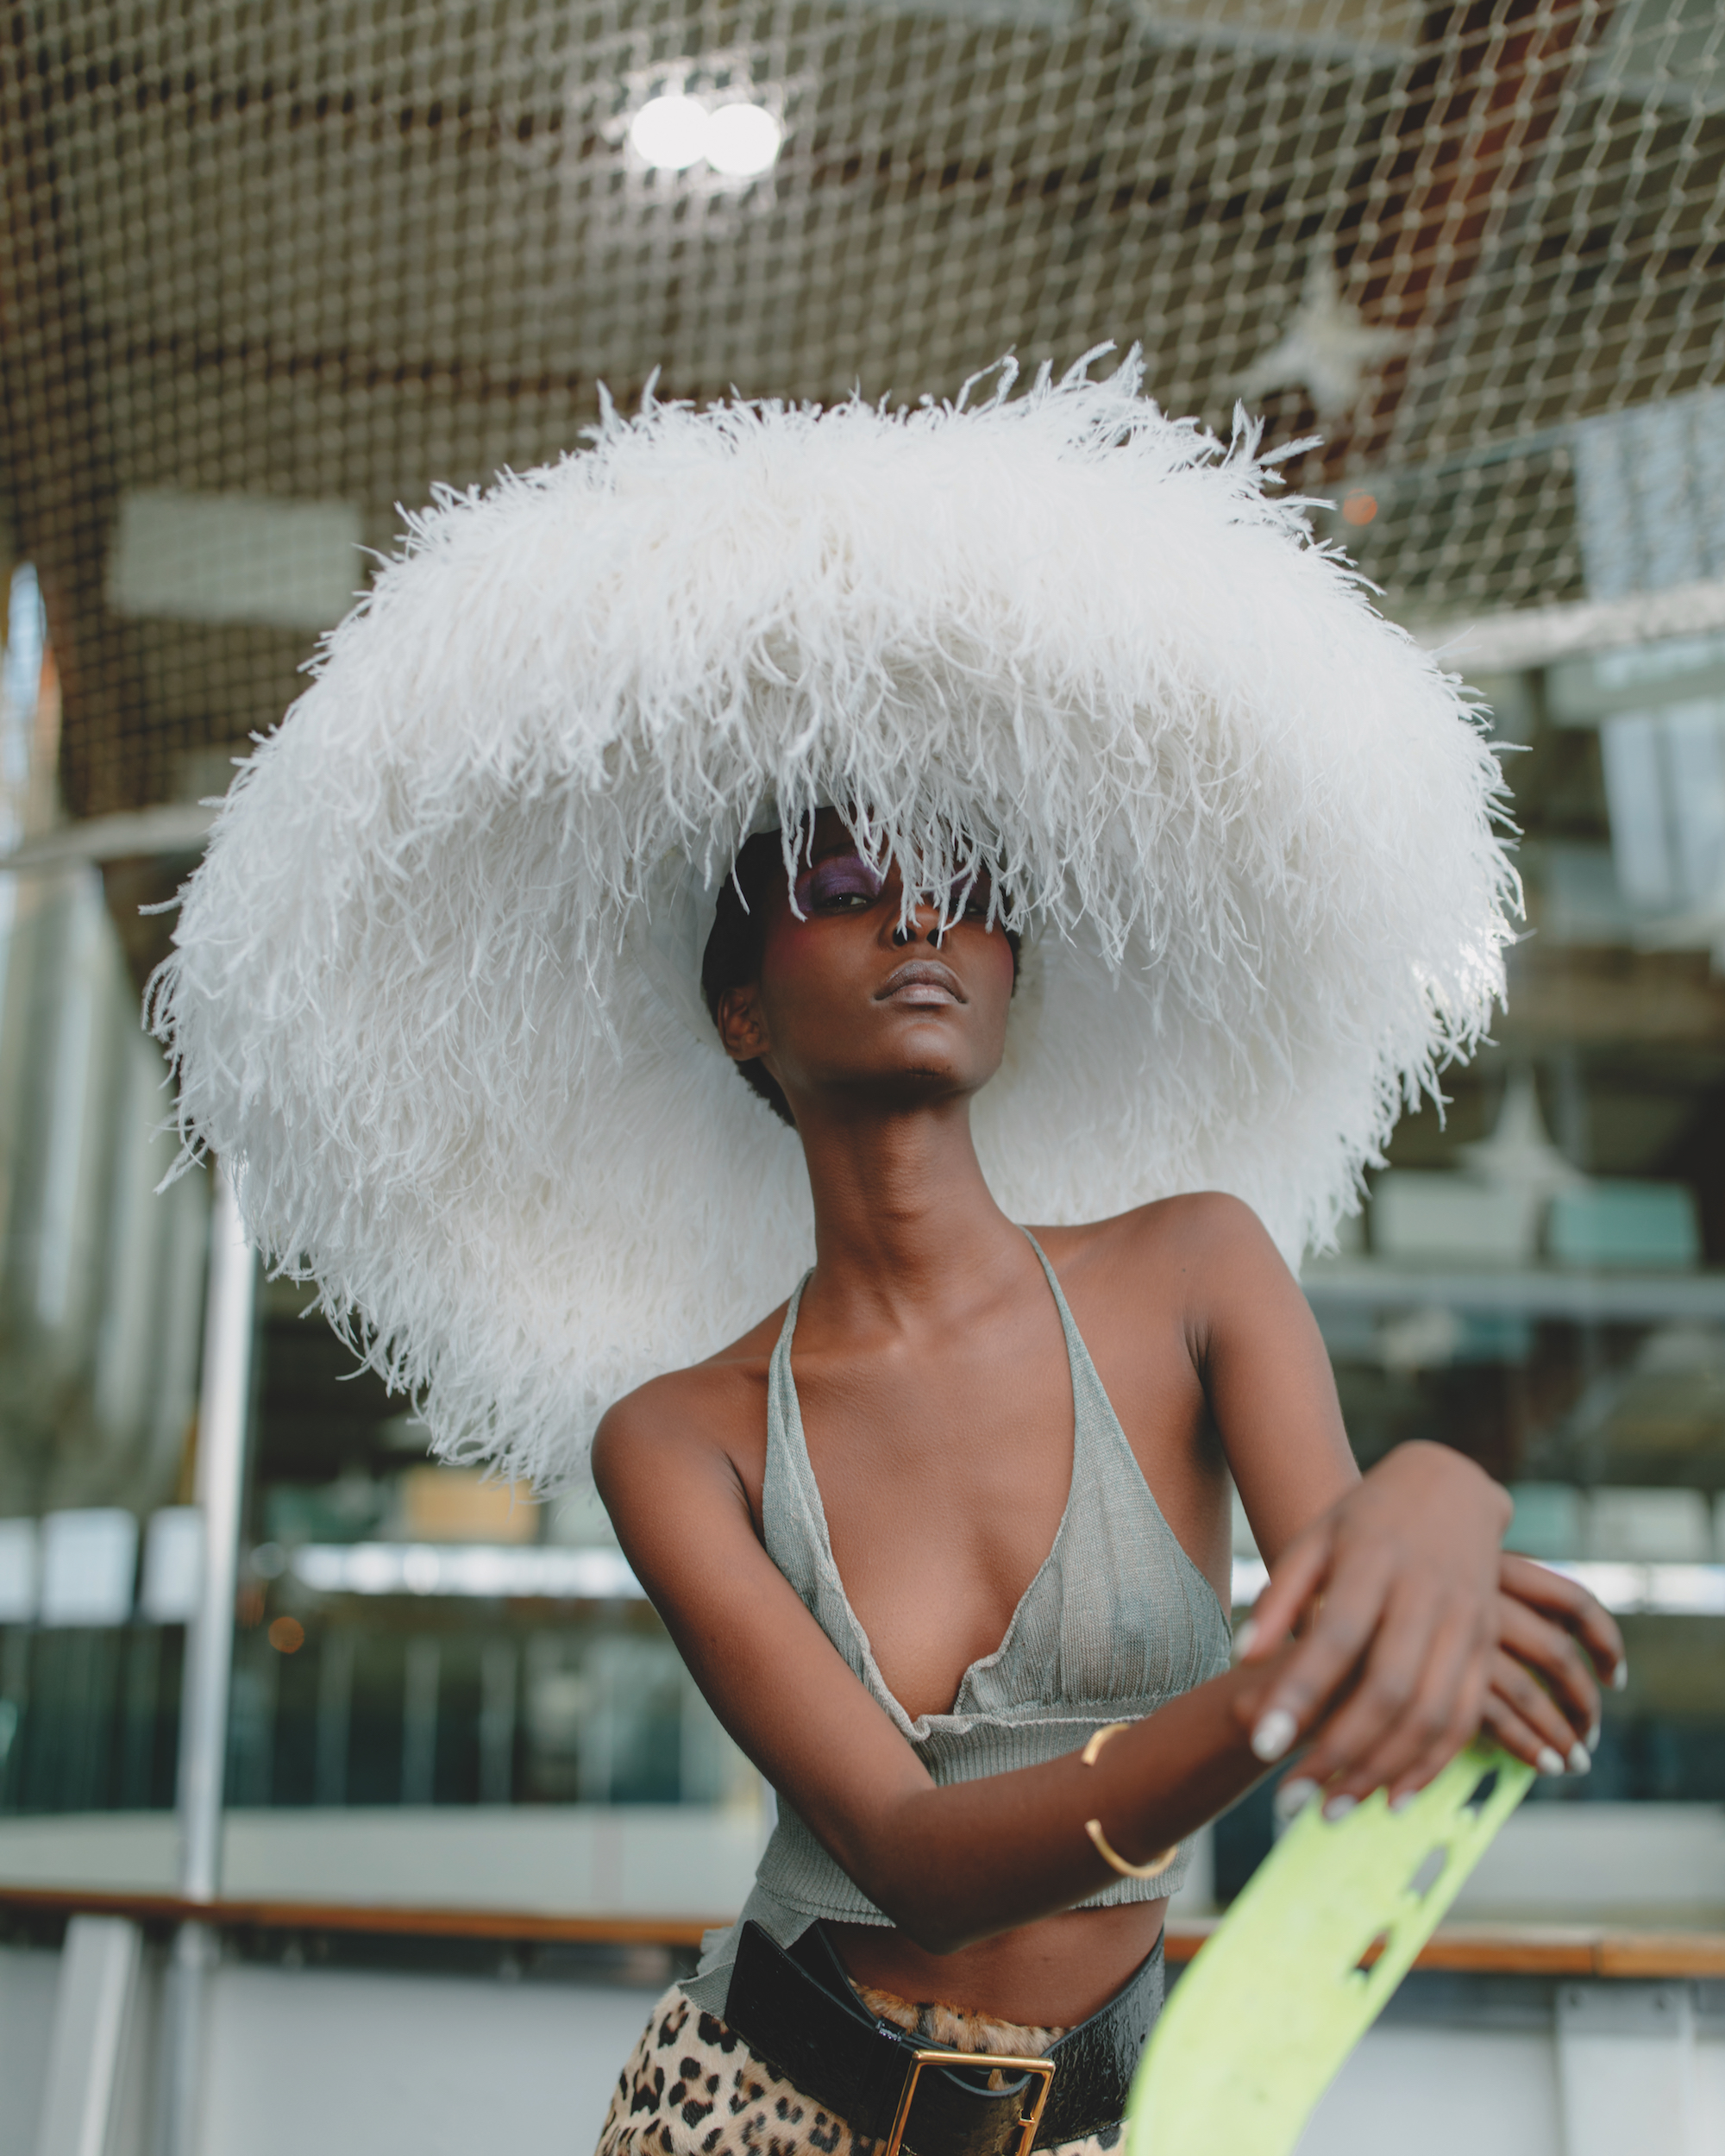 Spin around it's your white light fashion editorial from the Winter issue feather hat